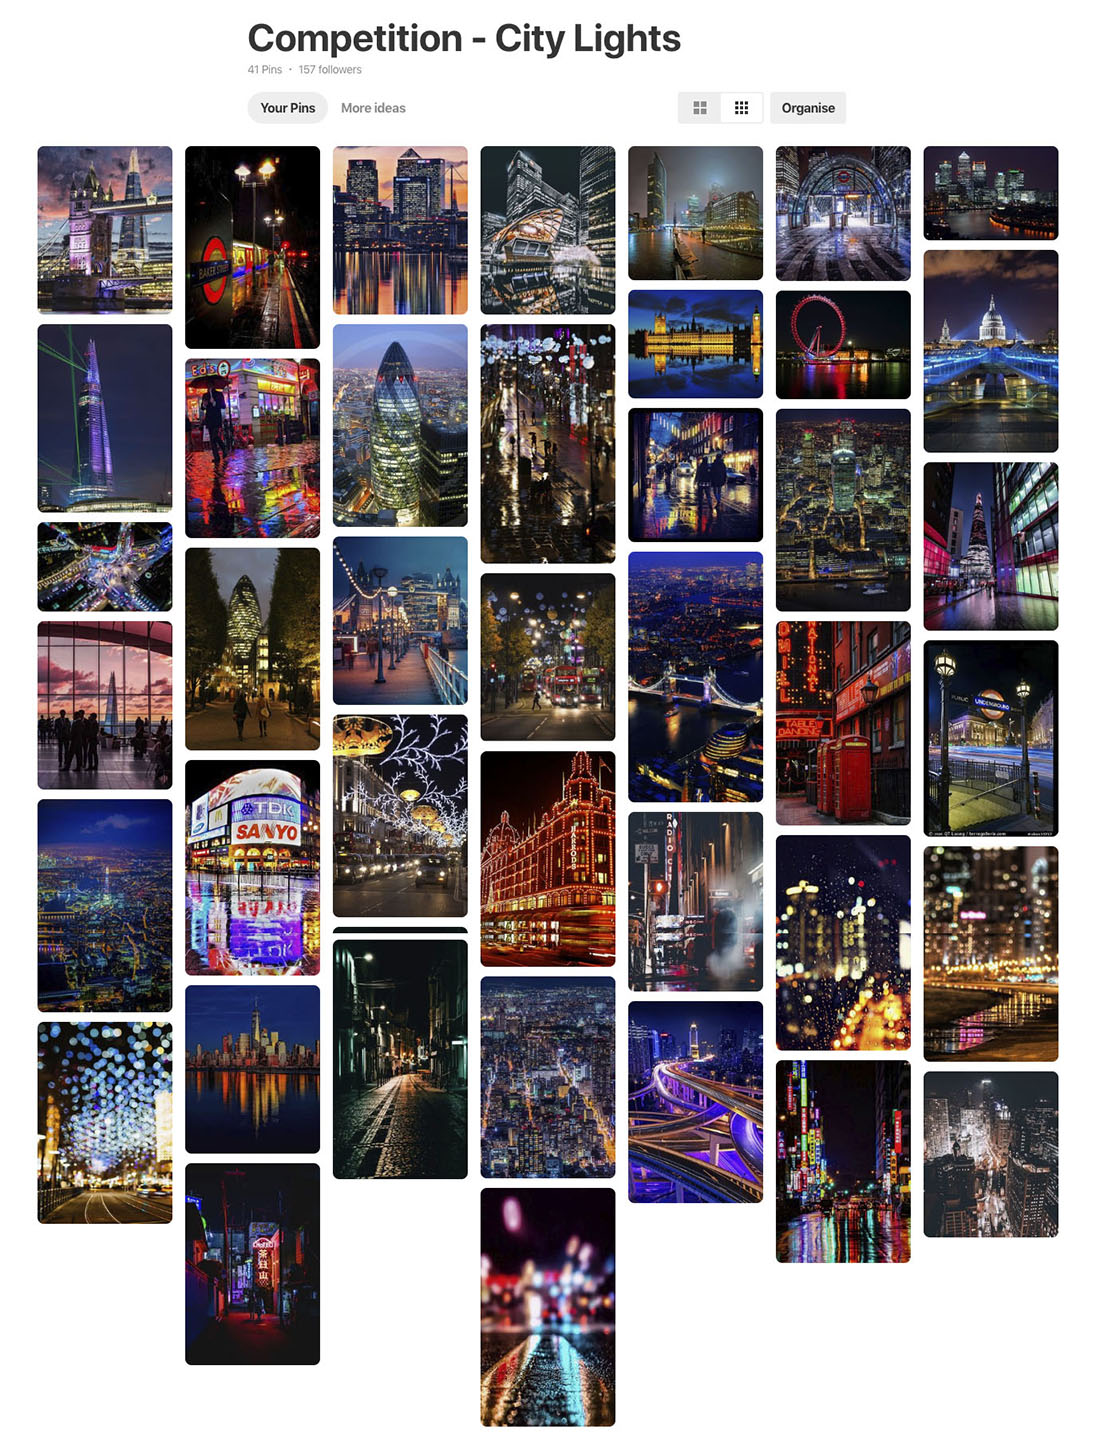 City Lights photography competition pinterest board